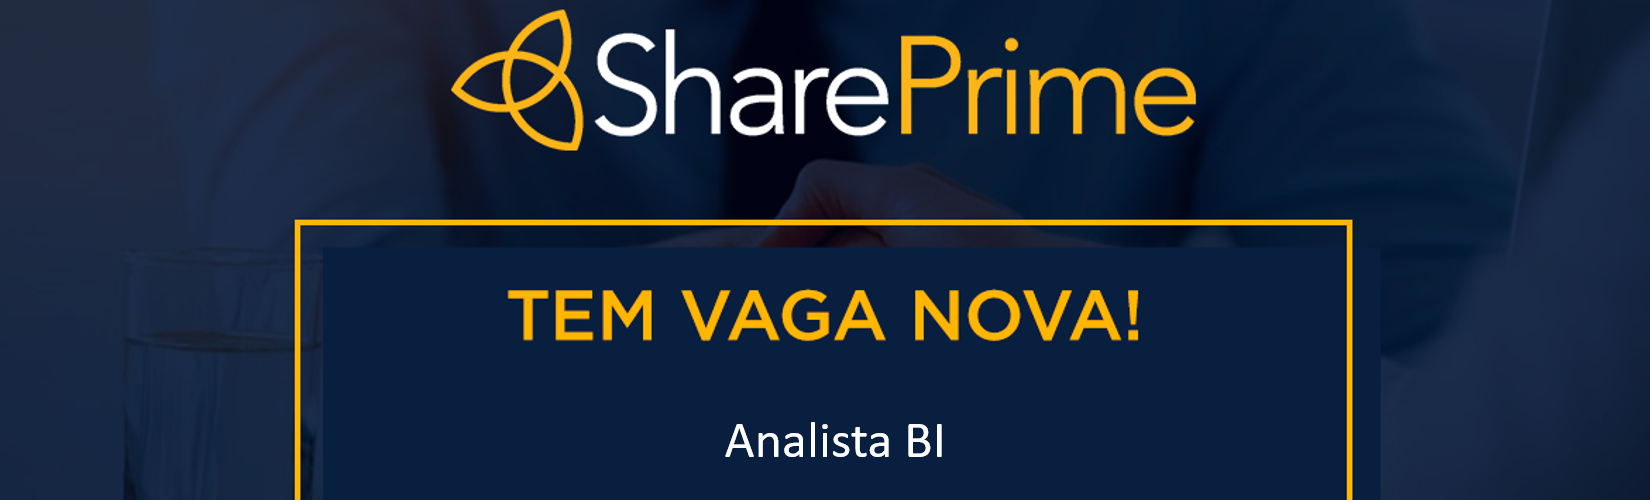 [SHAREPRIME] Analista BI